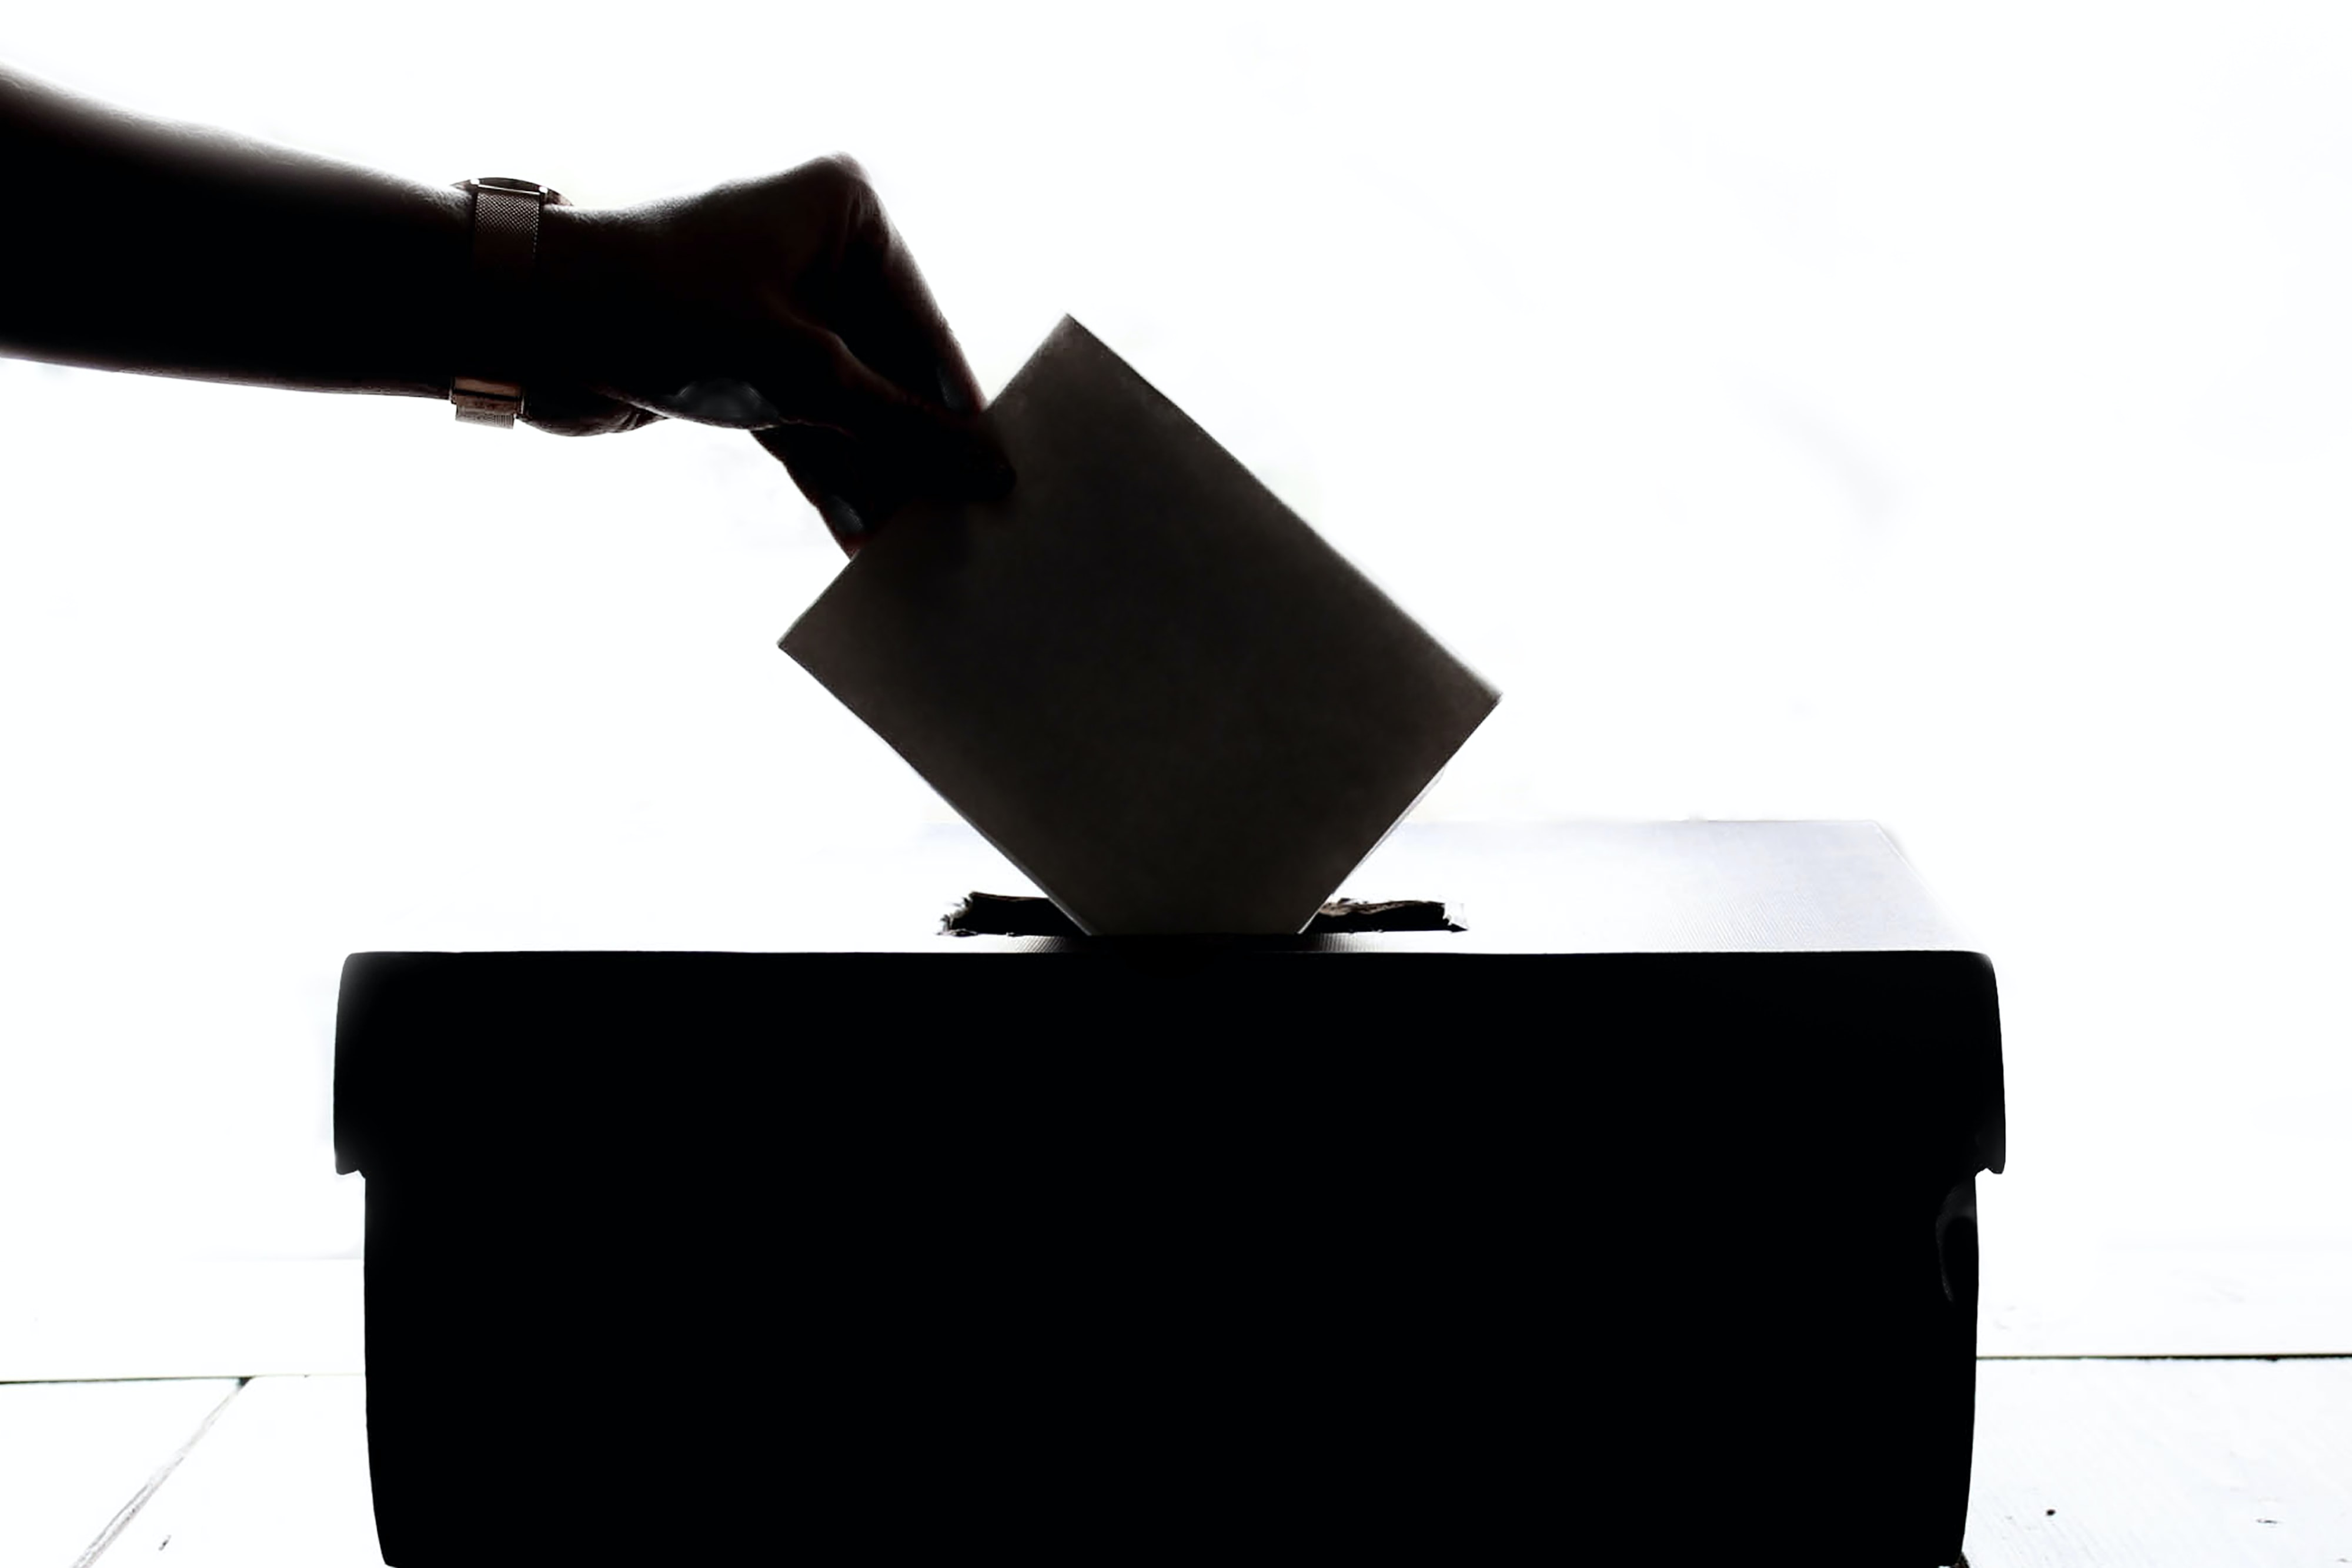 The municipal election was held Oct. 18.